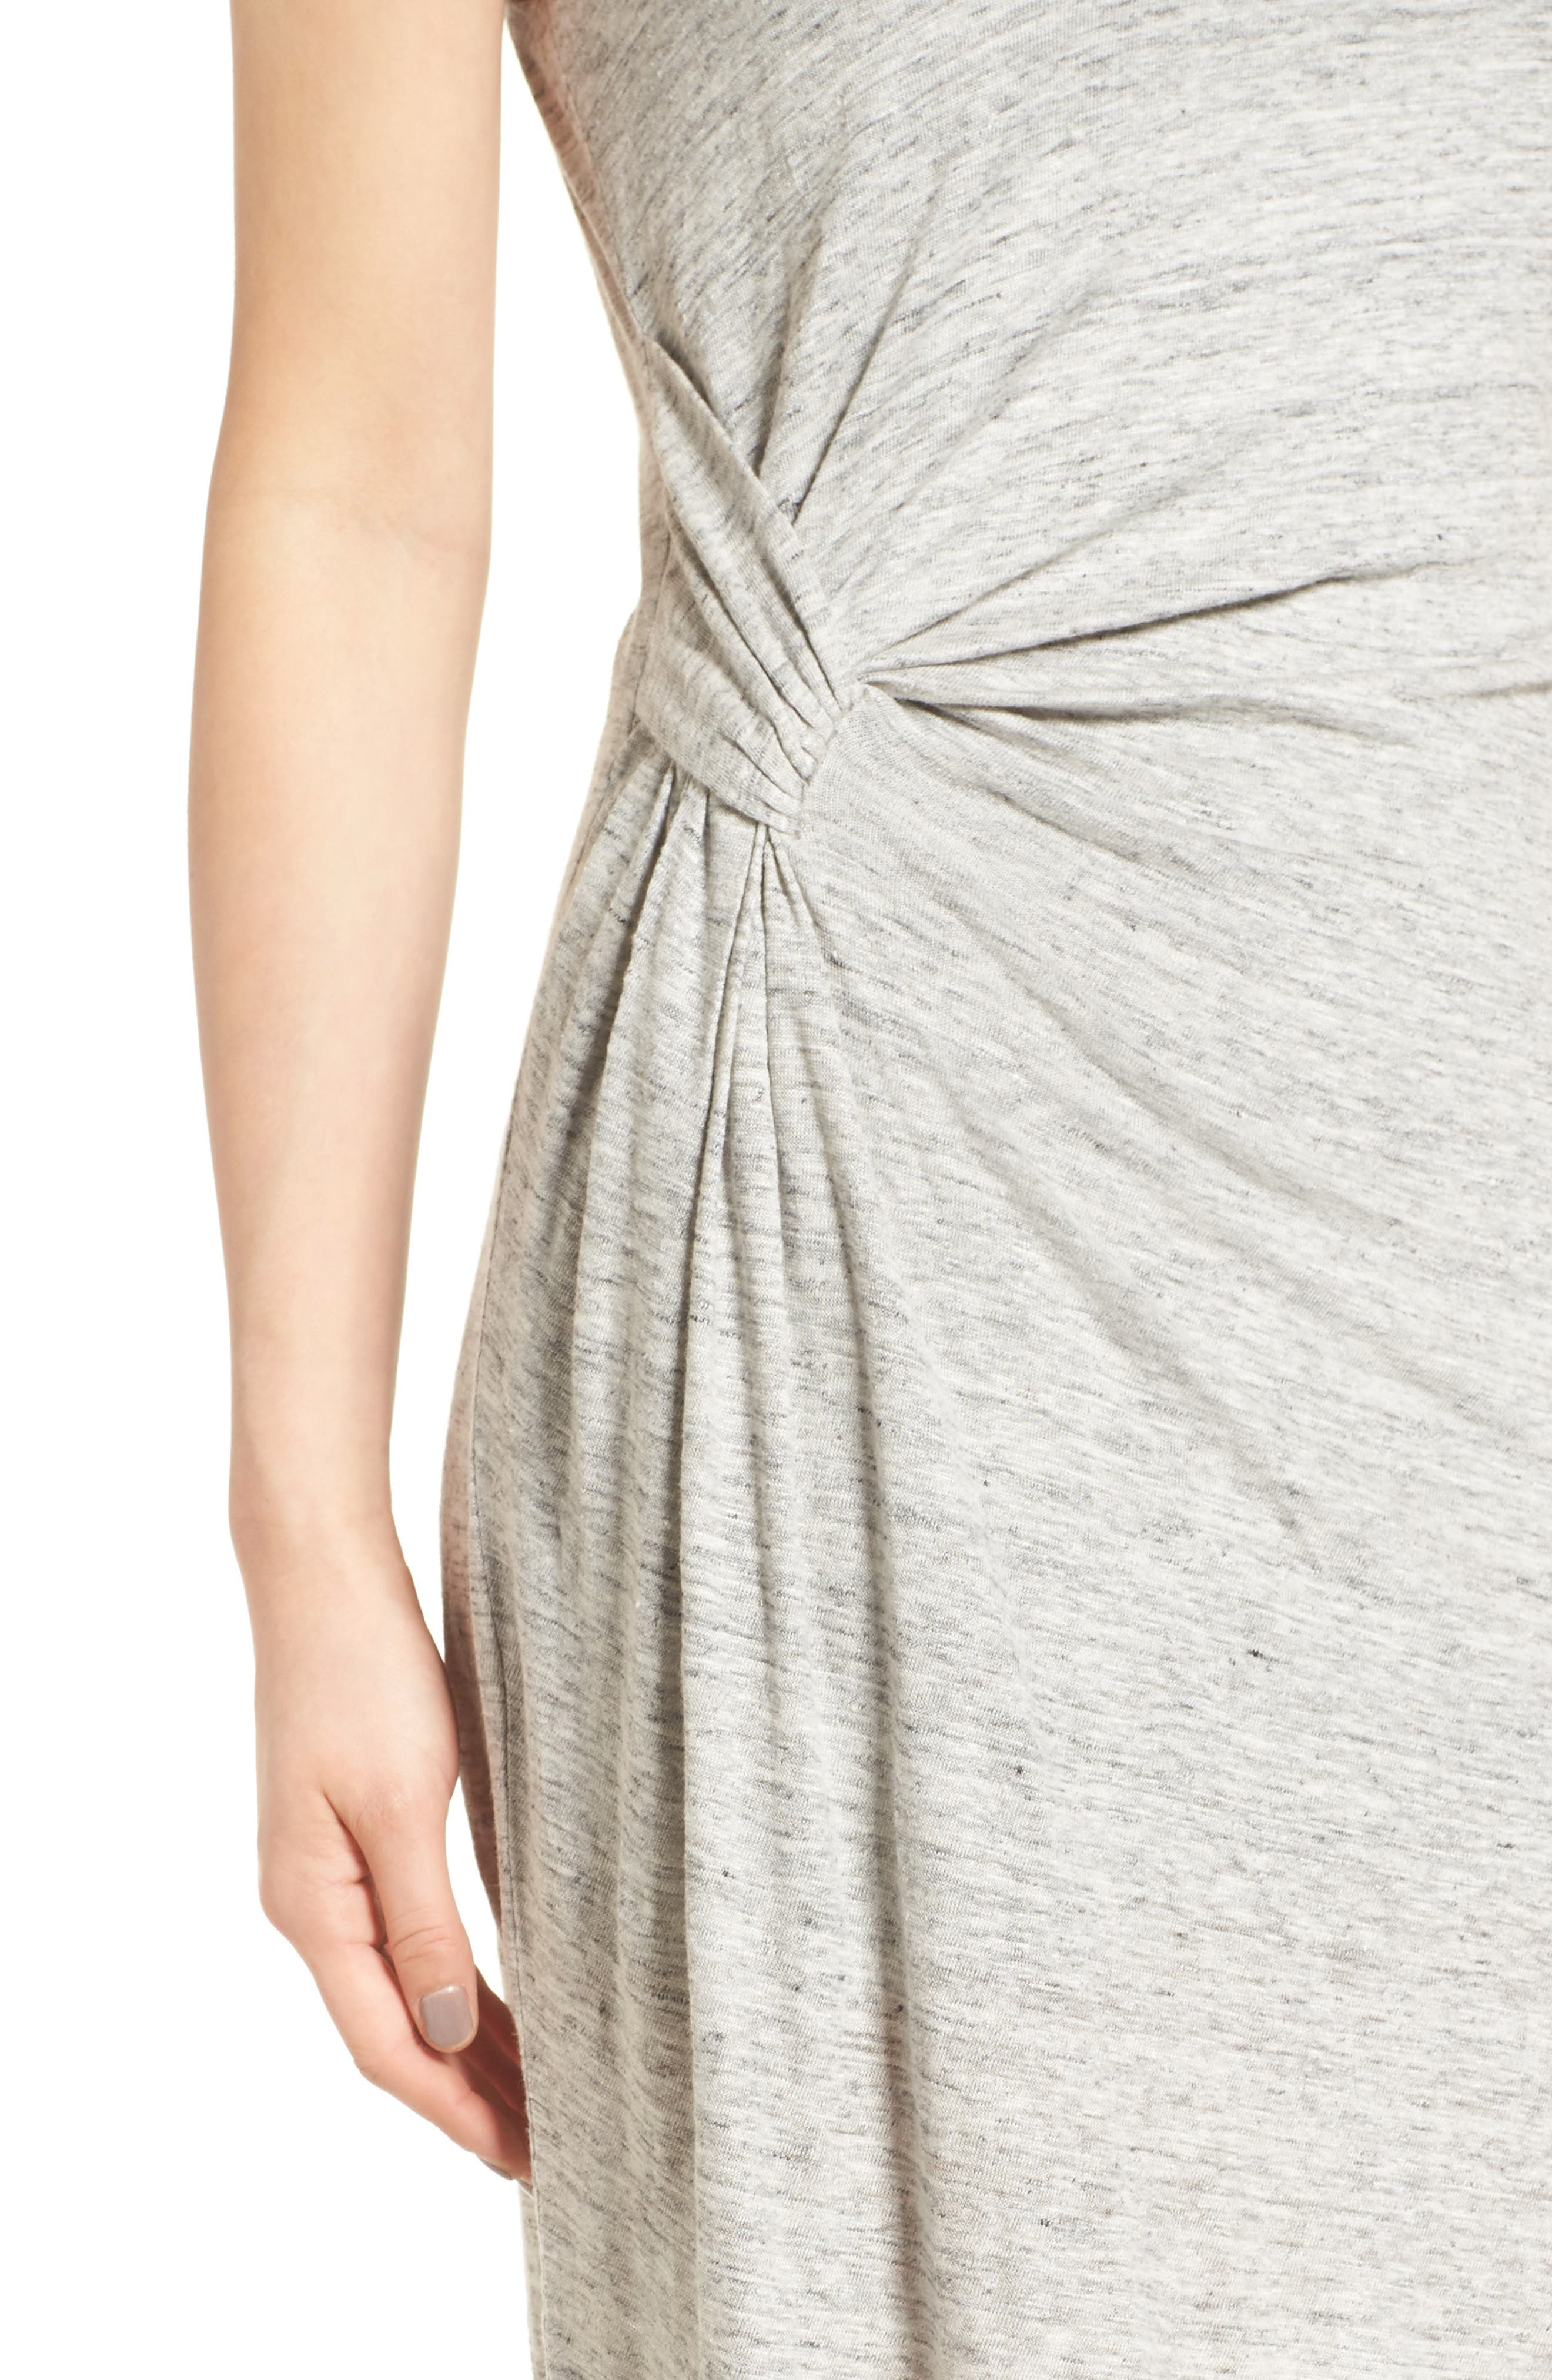 Asymmetrical Ruched Dress,                             Alternate thumbnail 4, color,                             051